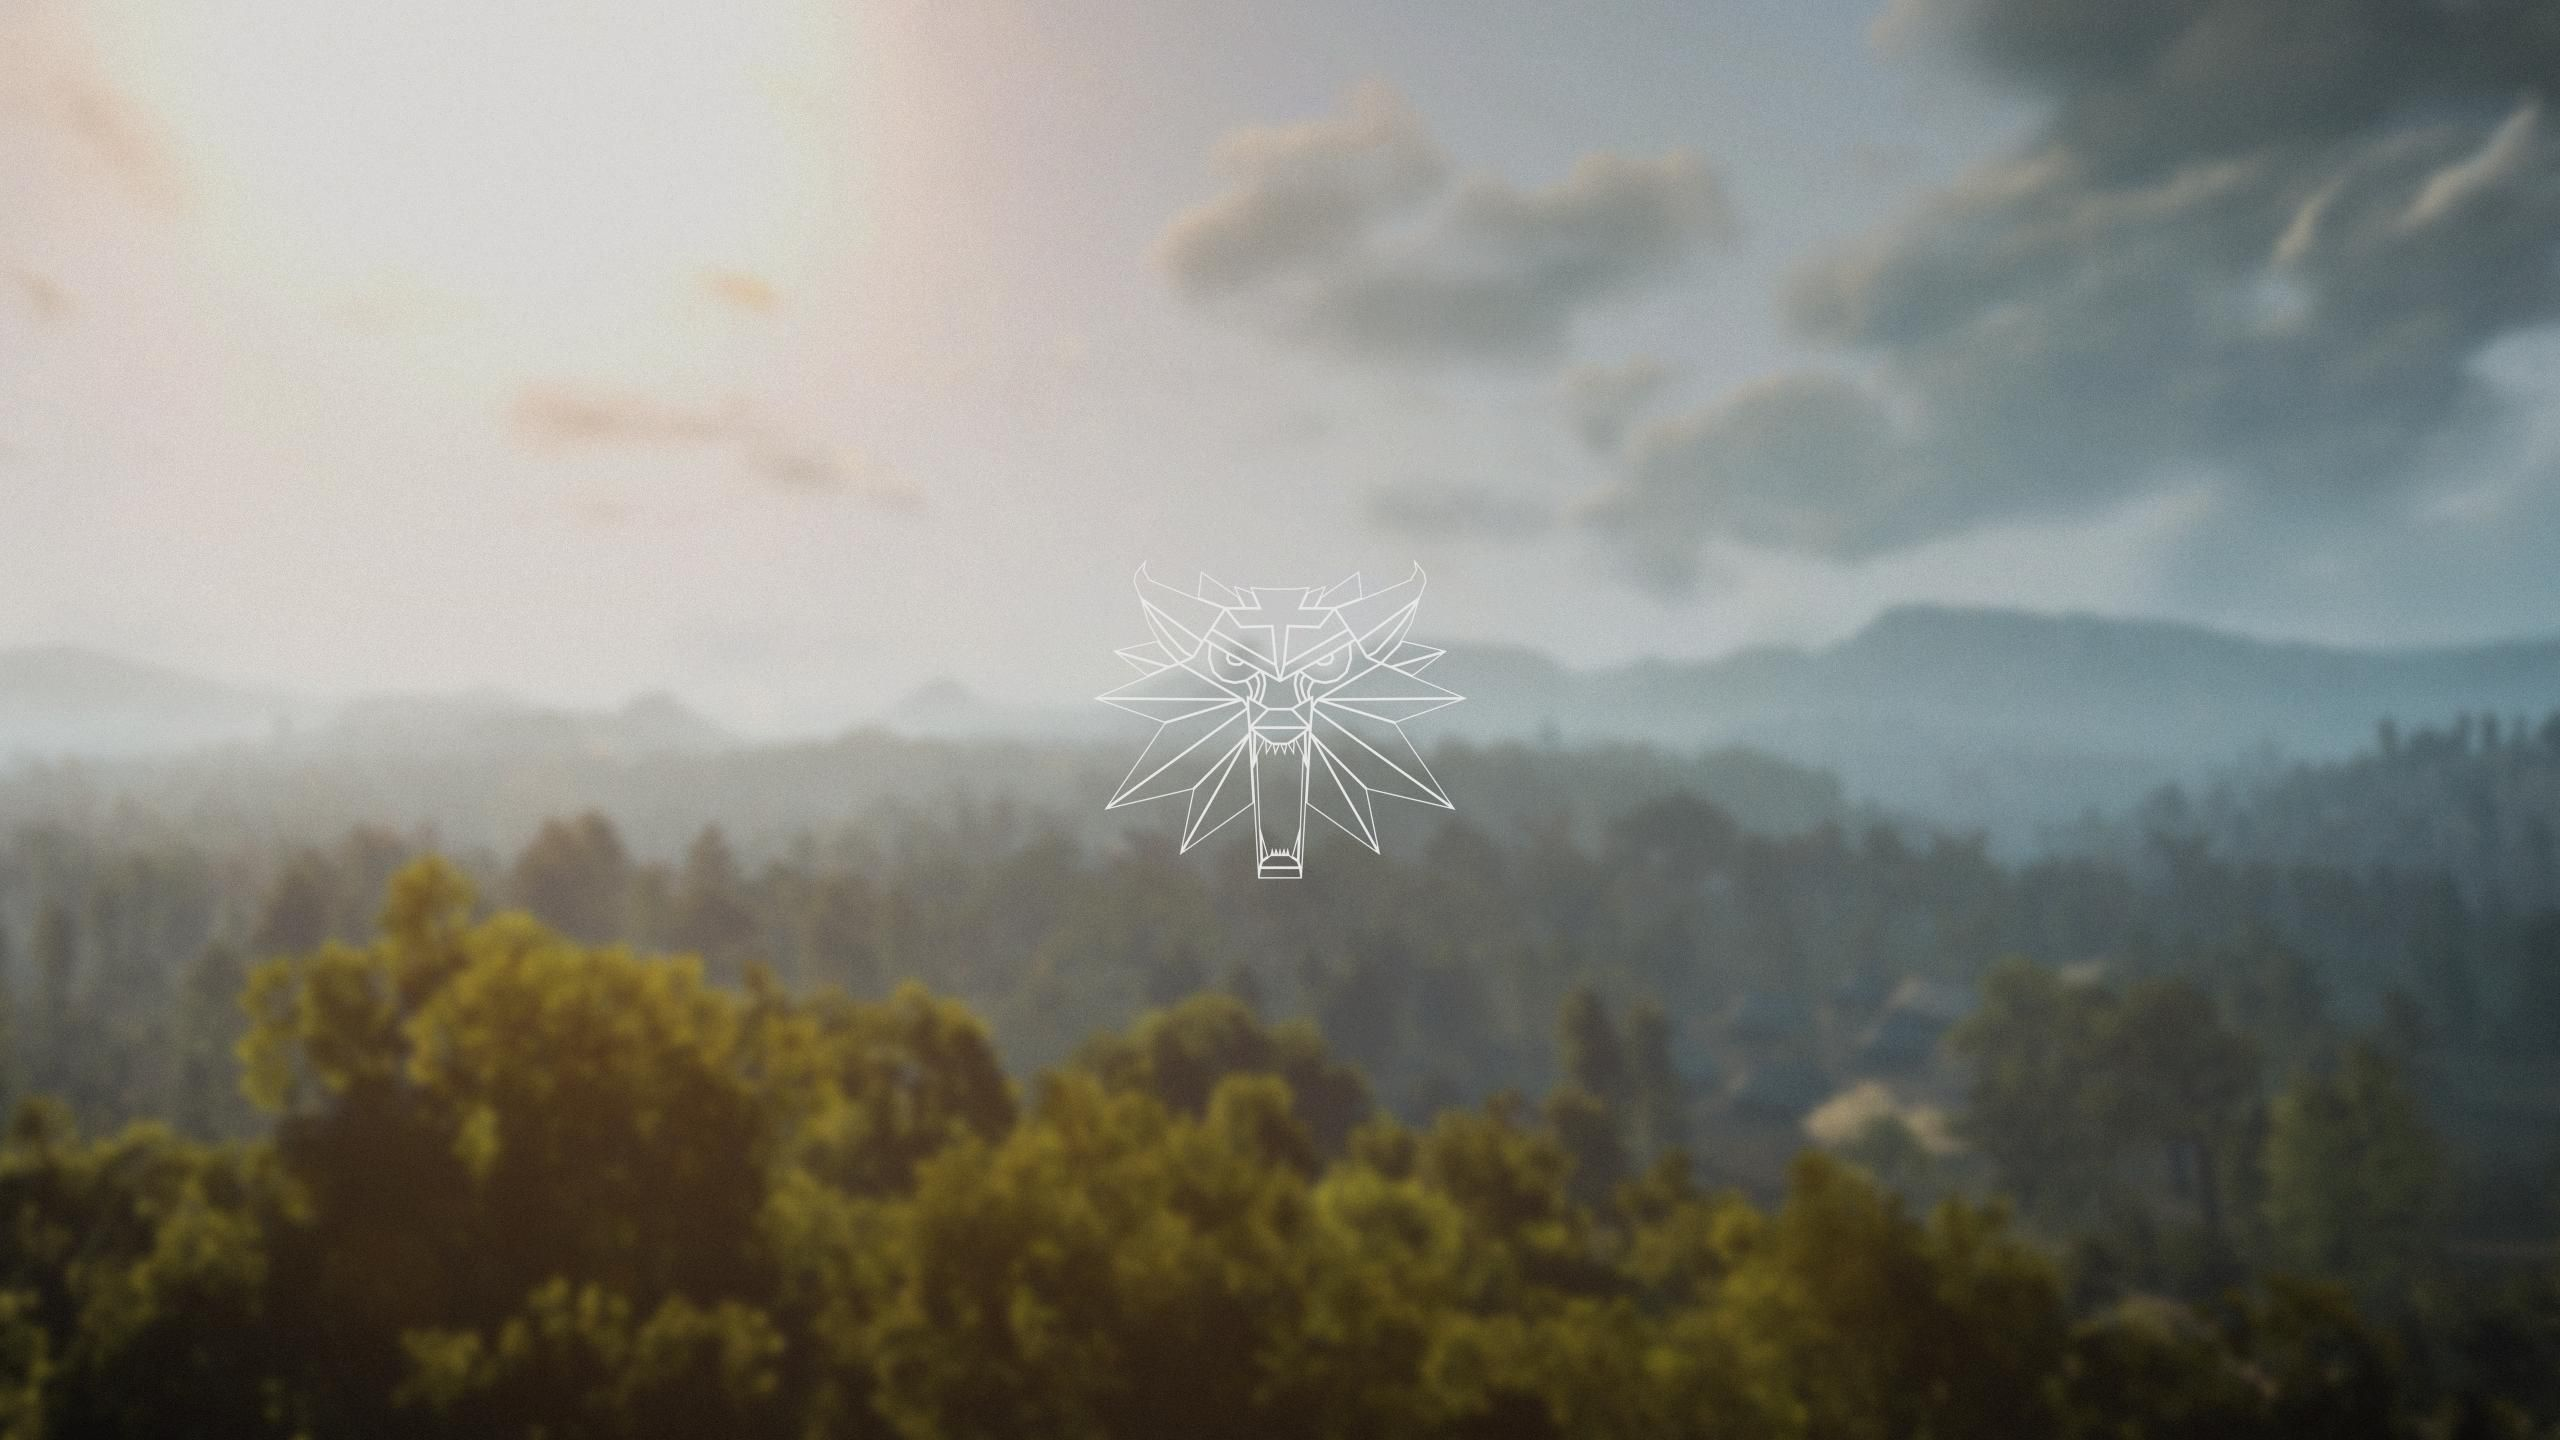 the witcher 3 minimalist wallpapers high quality resolution for